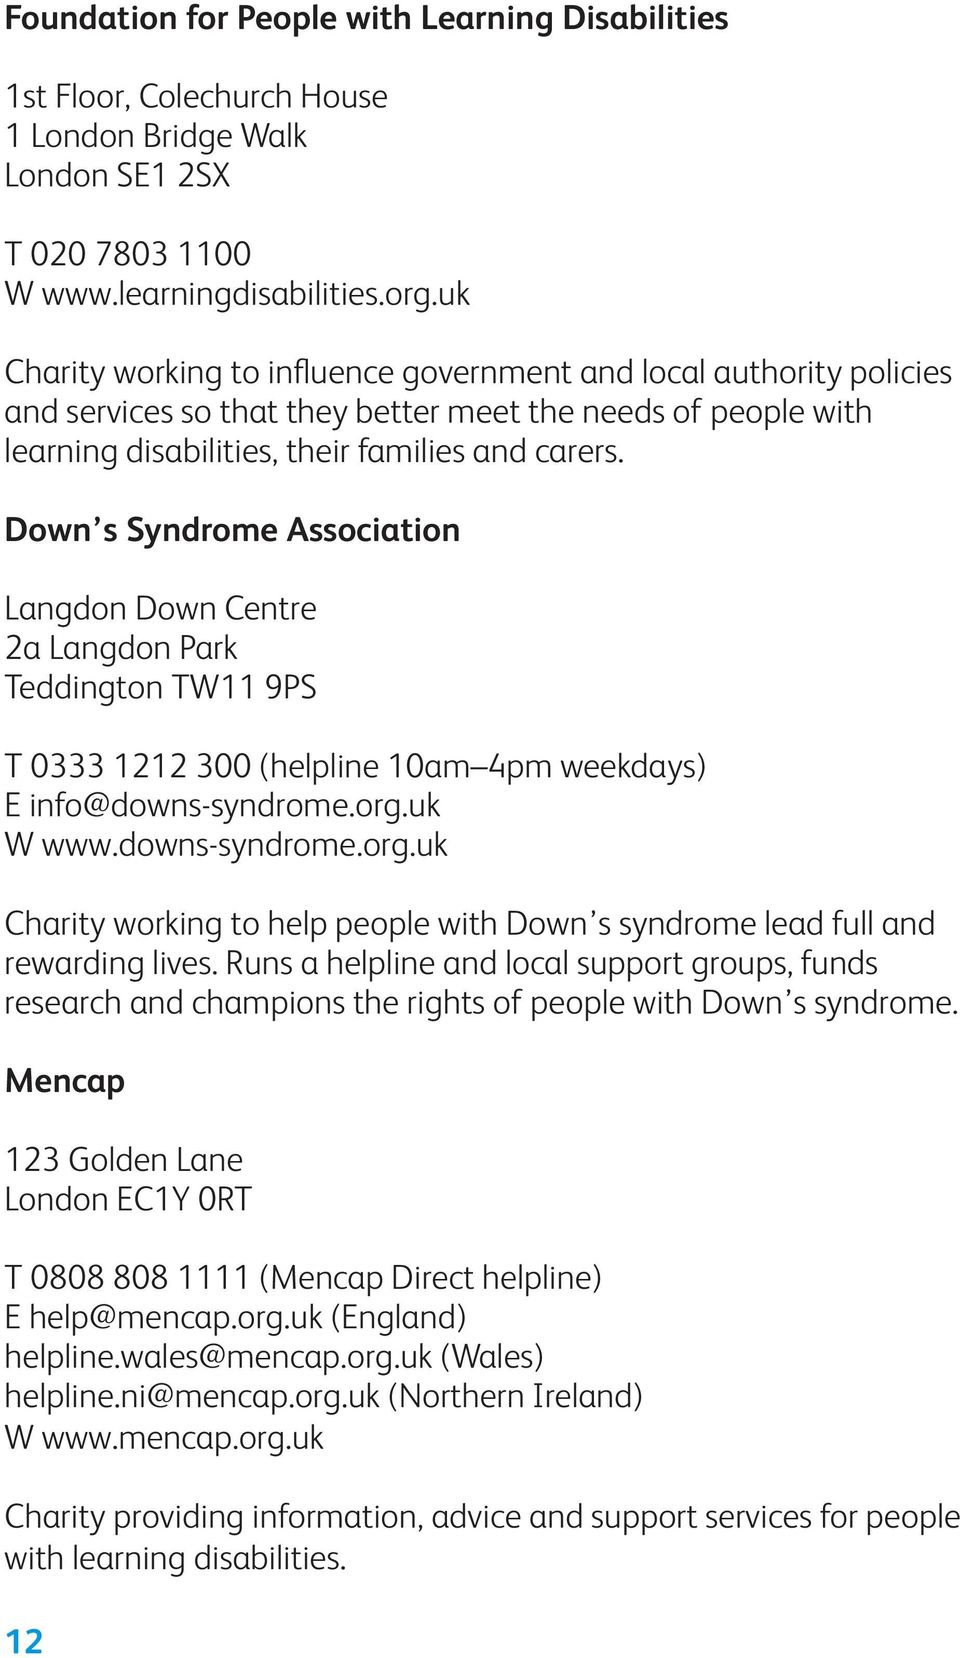 Down s Syndrome Association Langdon Down Centre 2a Langdon Park Teddington TW11 9PS T 0333 1212 300 (helpline 10am 4pm weekdays) E info@downs-syndrome.org.